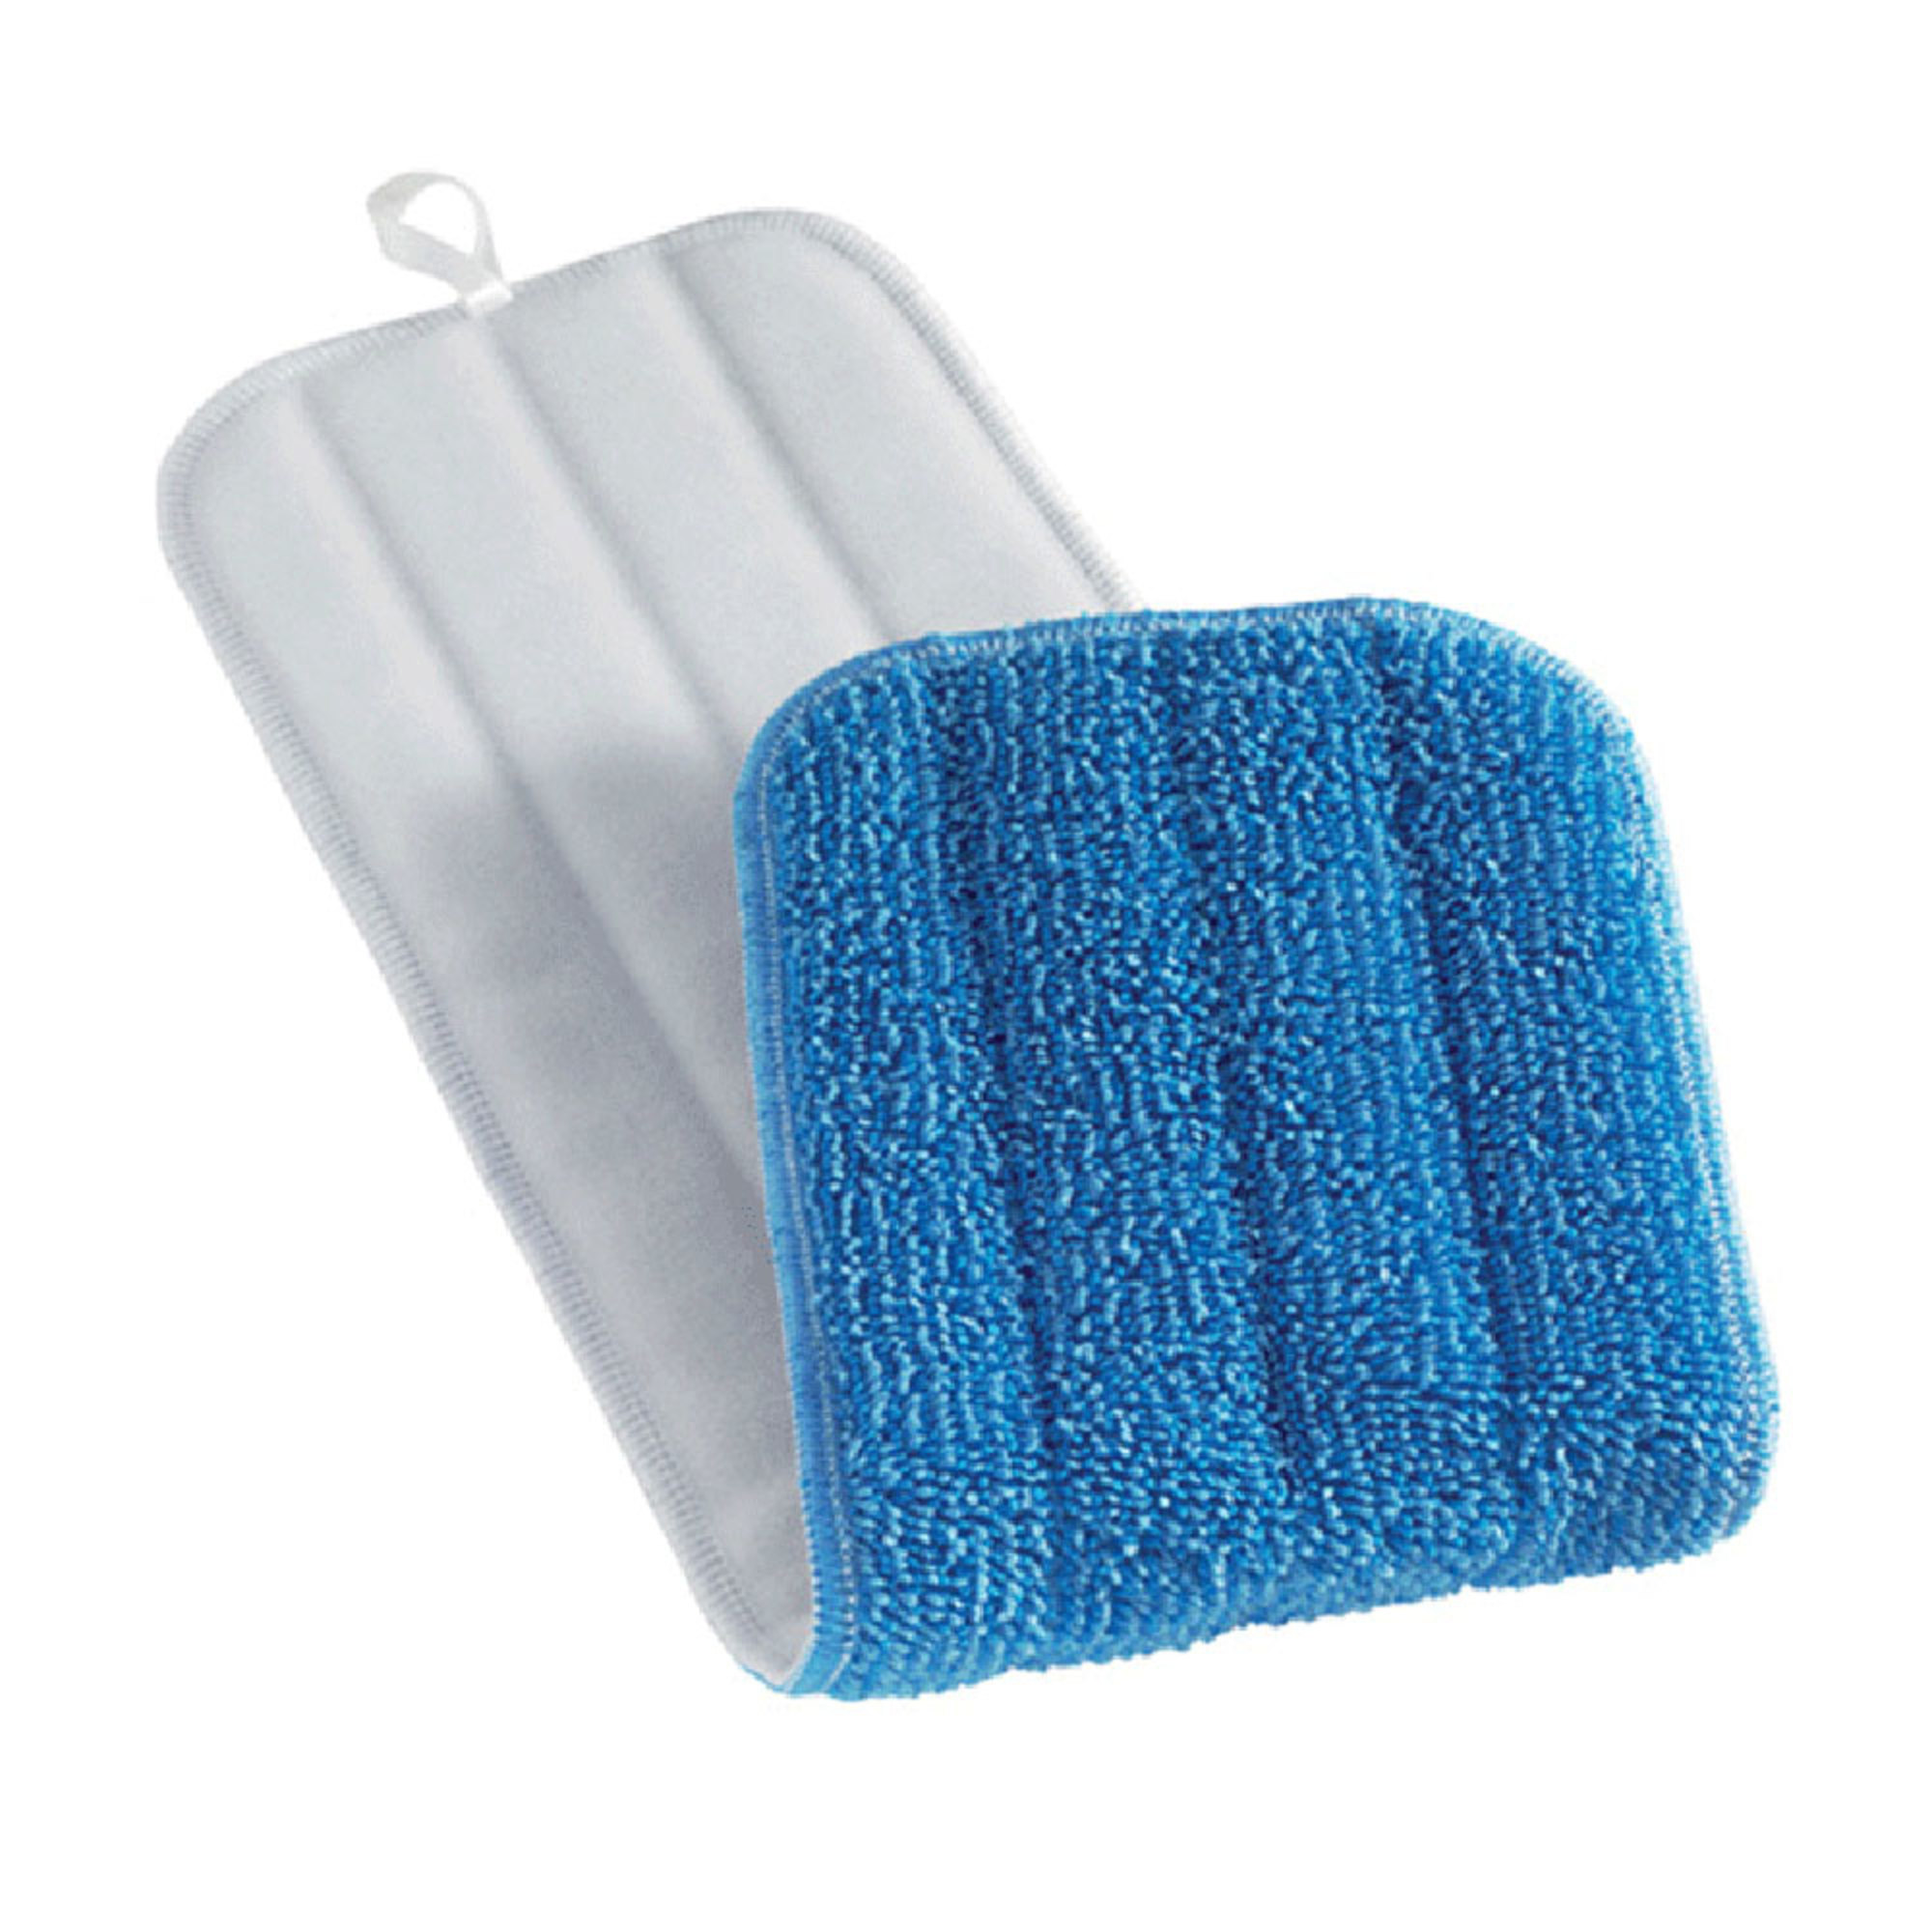 ECLOTH 10621 DEEP CLEAN MOP HEAD USED WITH THE DEEP CLEAN MOP